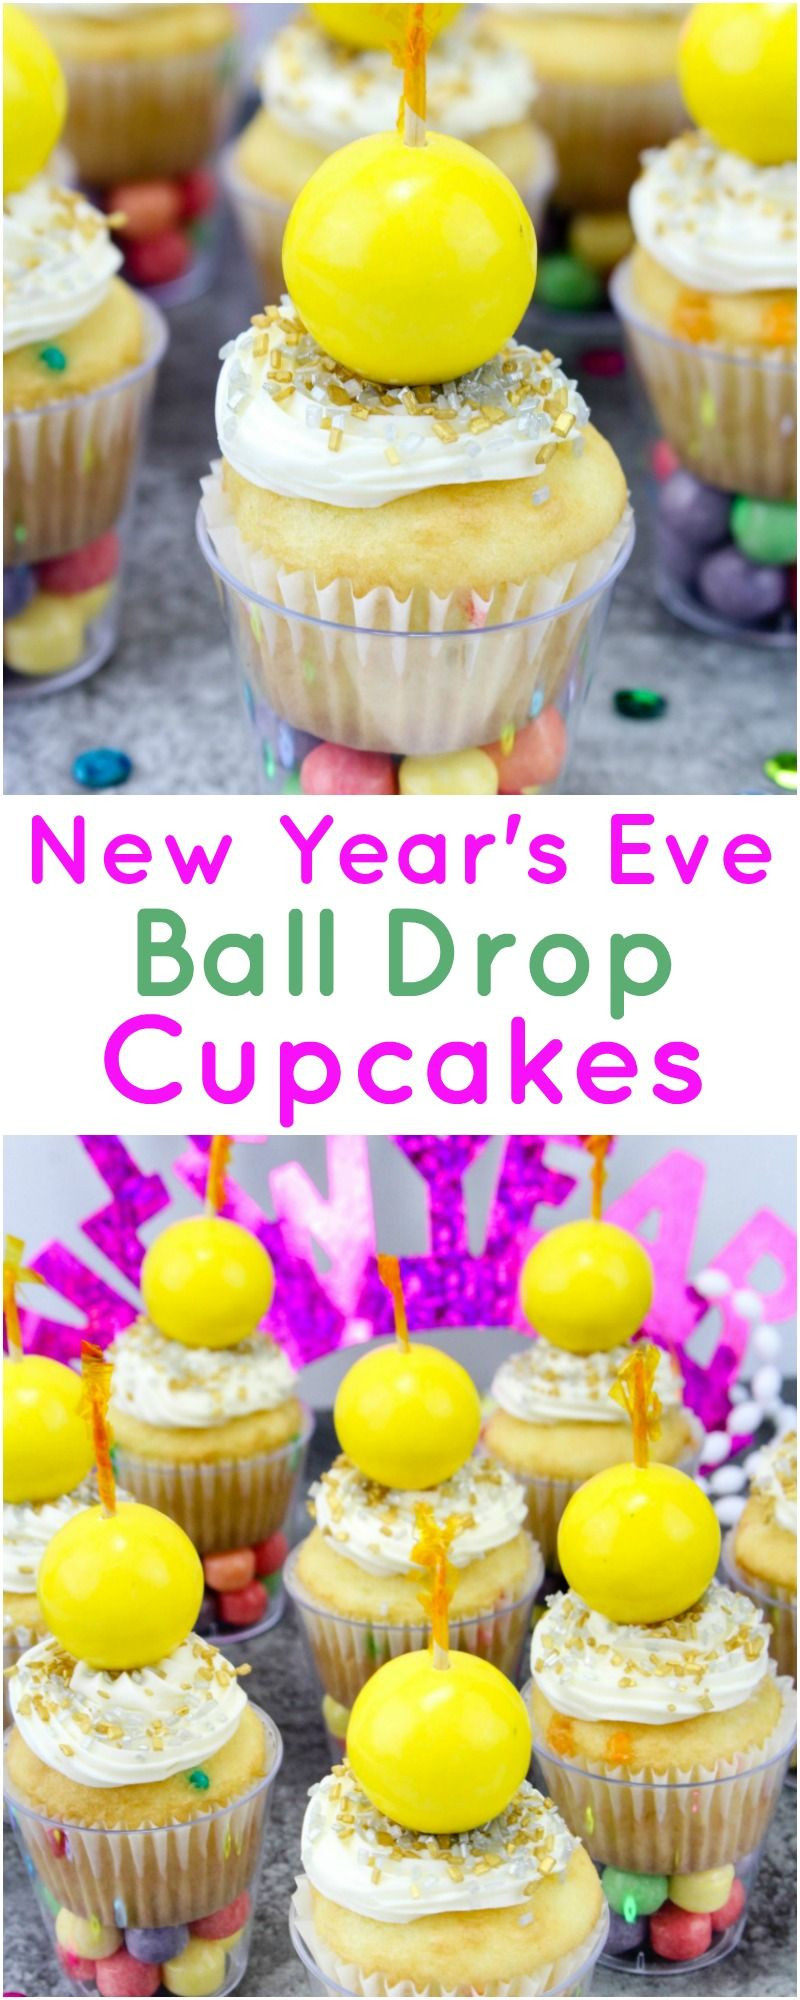 New Year'S Eve Desserts Party Ideas  New Year's Eve Ball Drop Cupcakes Recipe